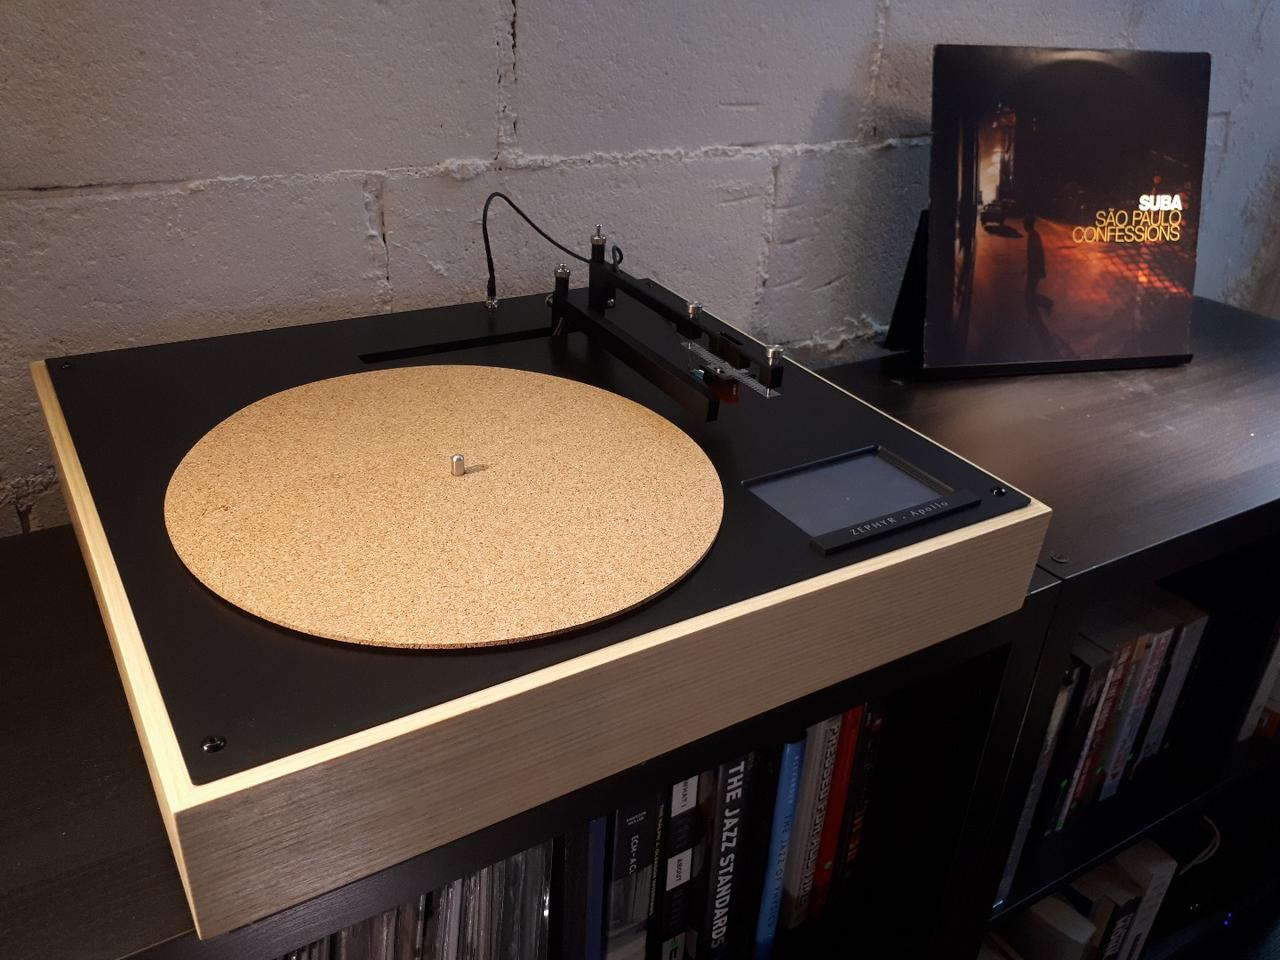 Apollo turntable combines an analog heart with digital brains